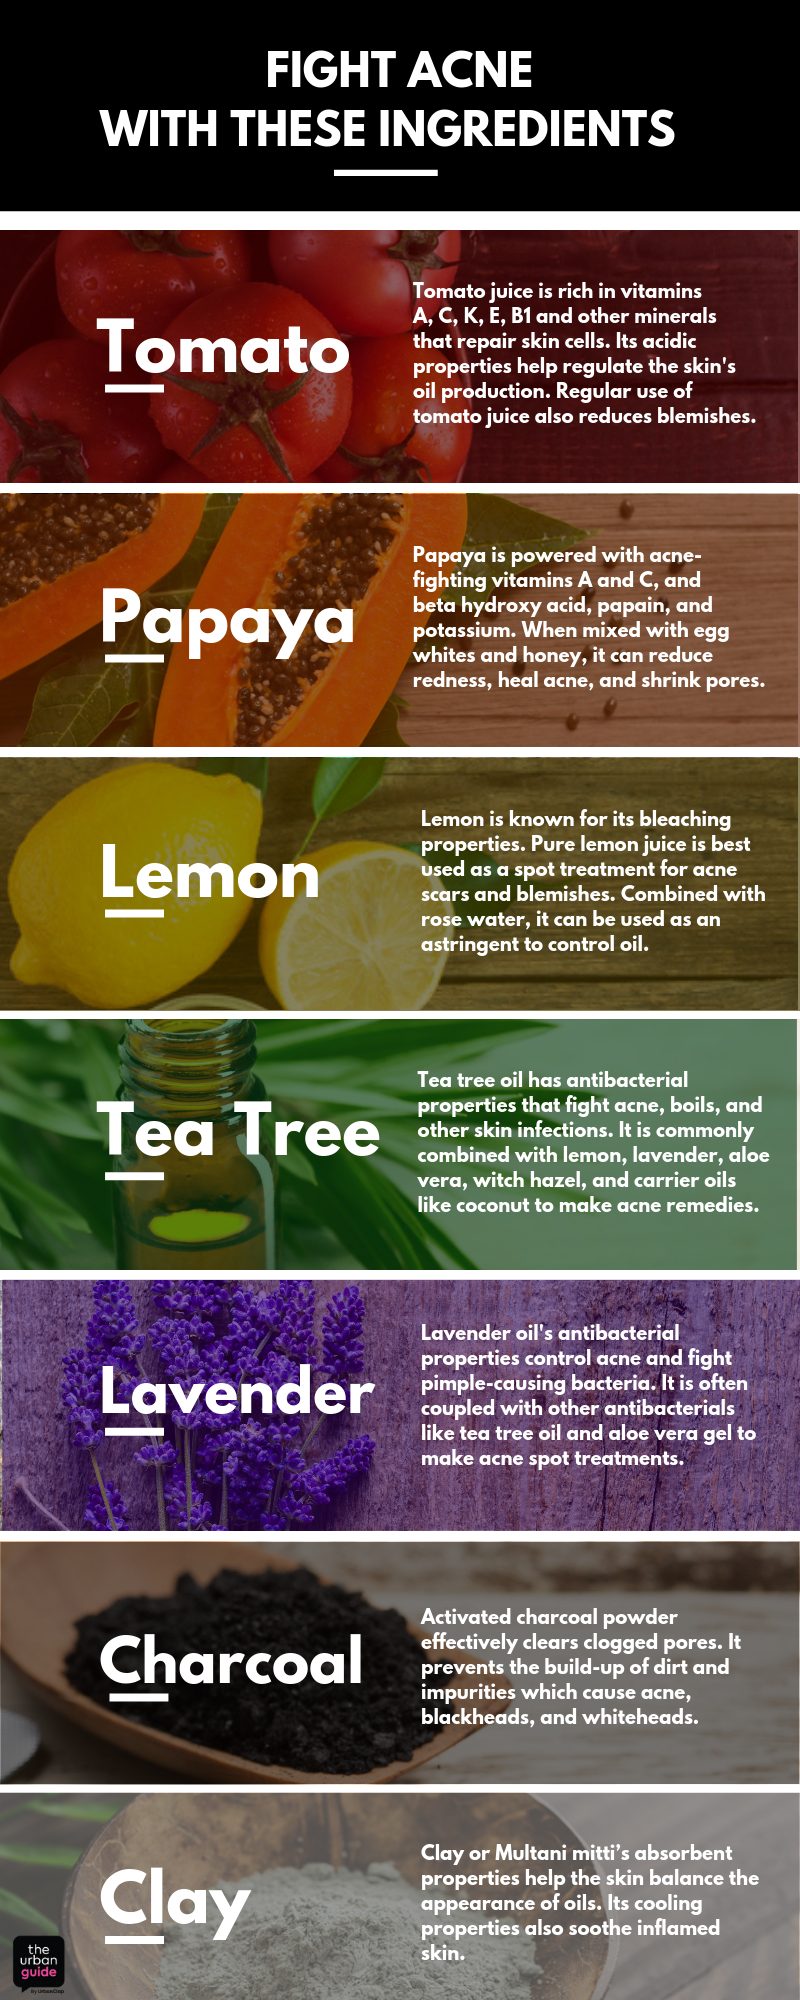 home-remedies-for-Acne-Ingredients